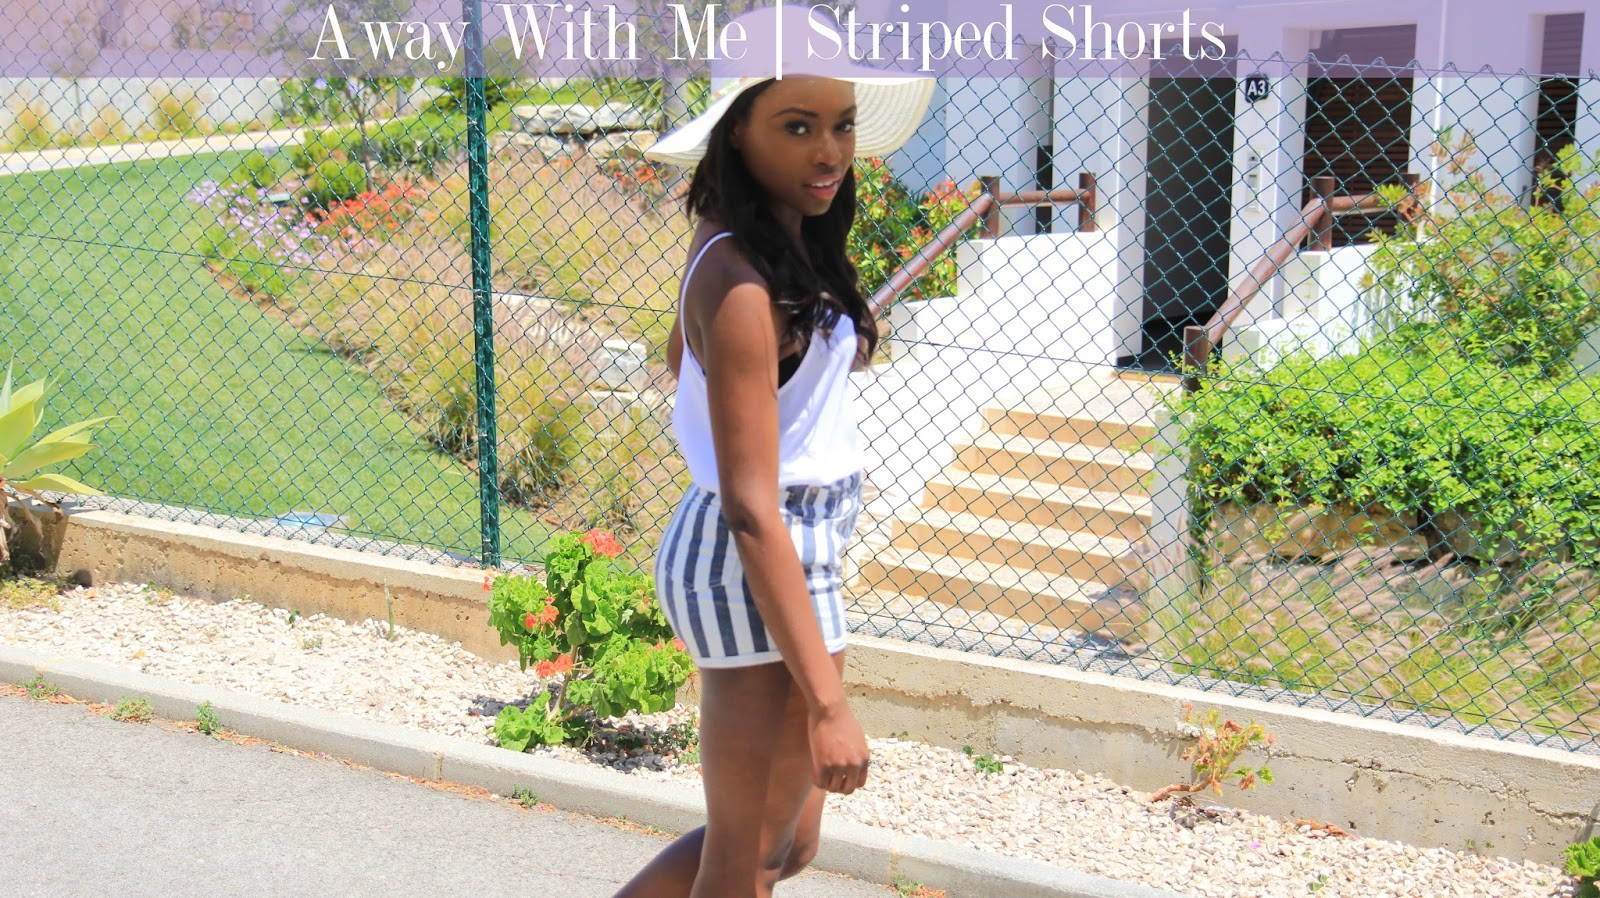 Away With Me| Shorts & Stripes